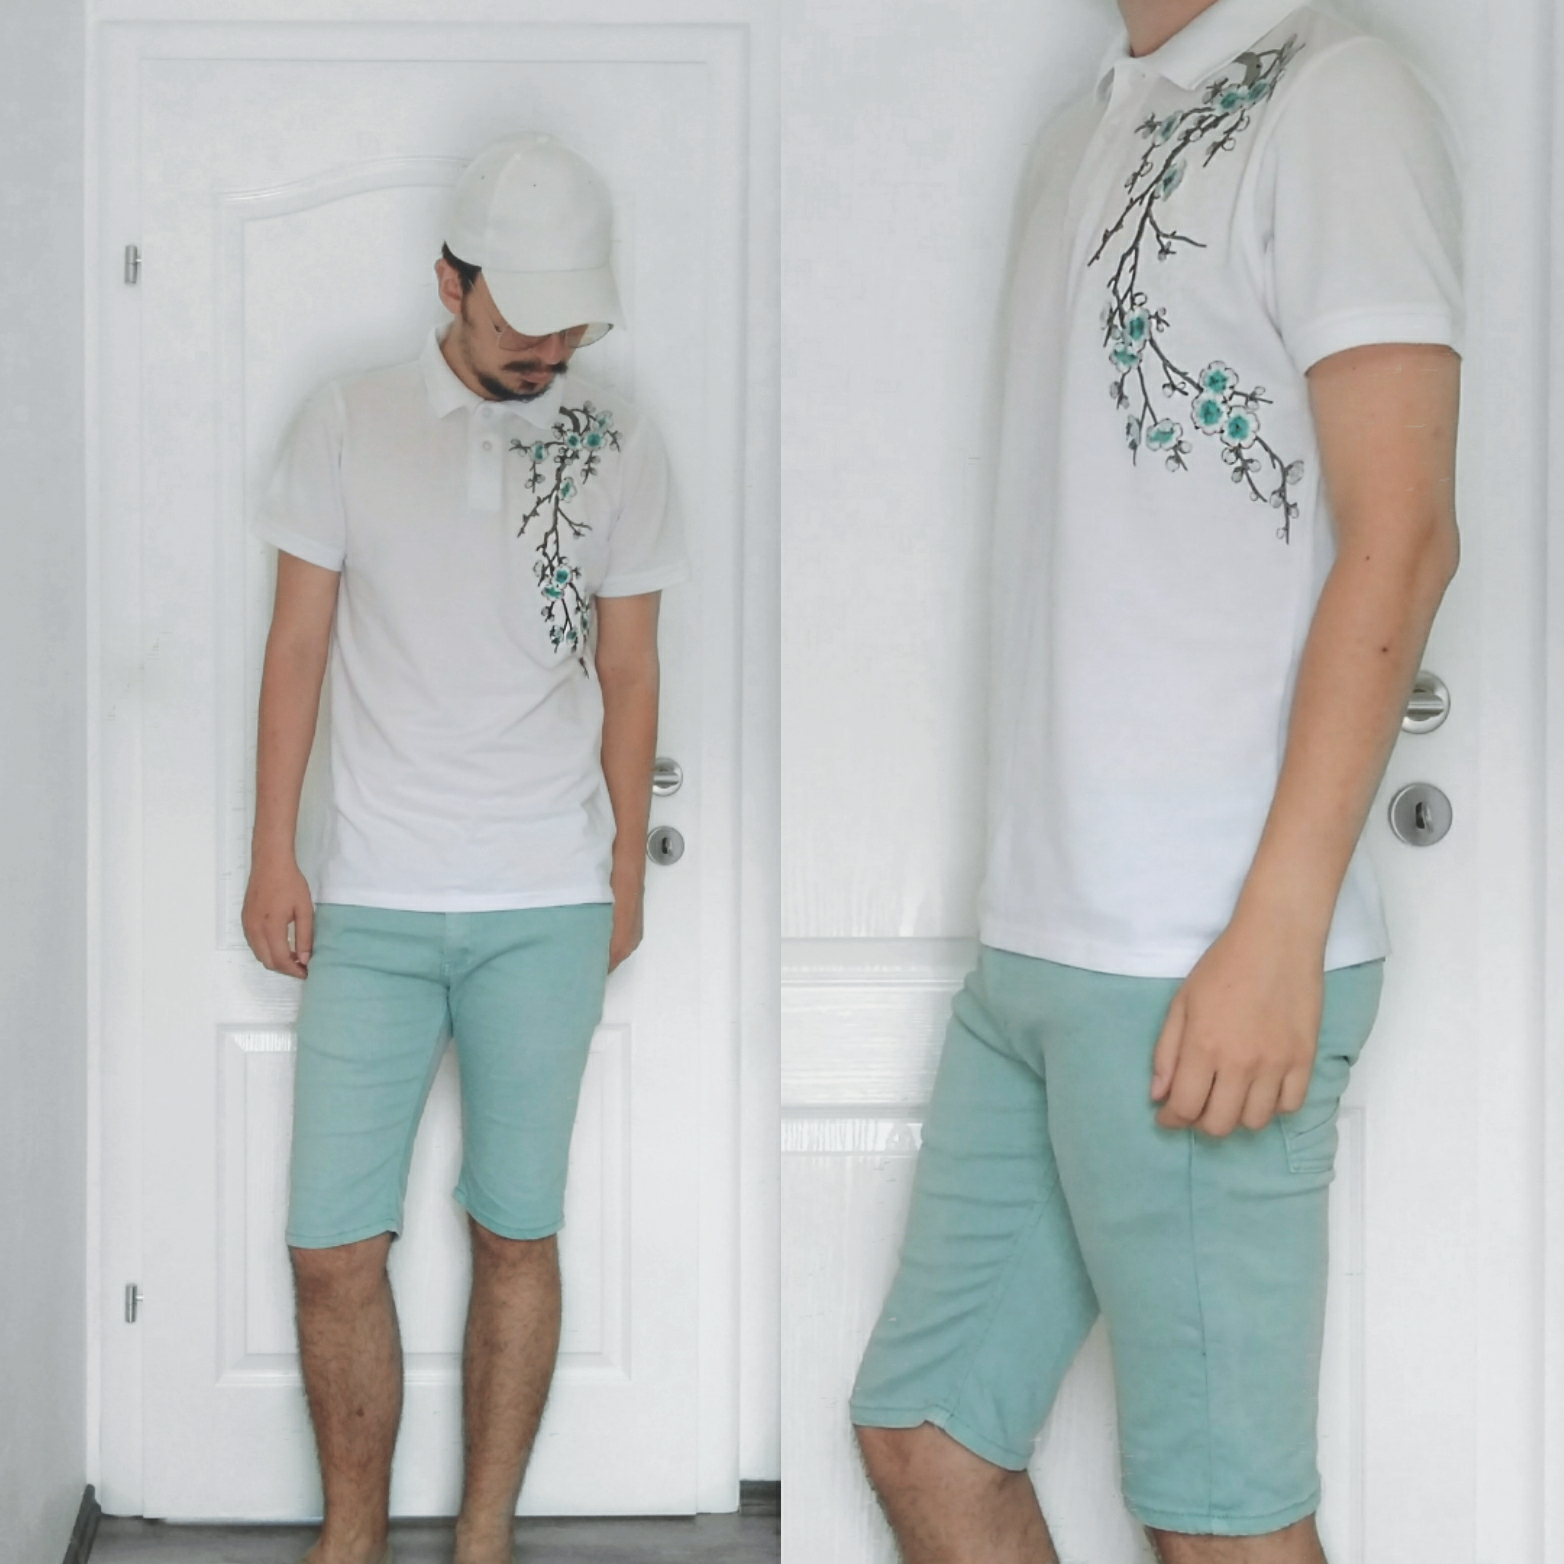 a casual outfit - the young fashionista